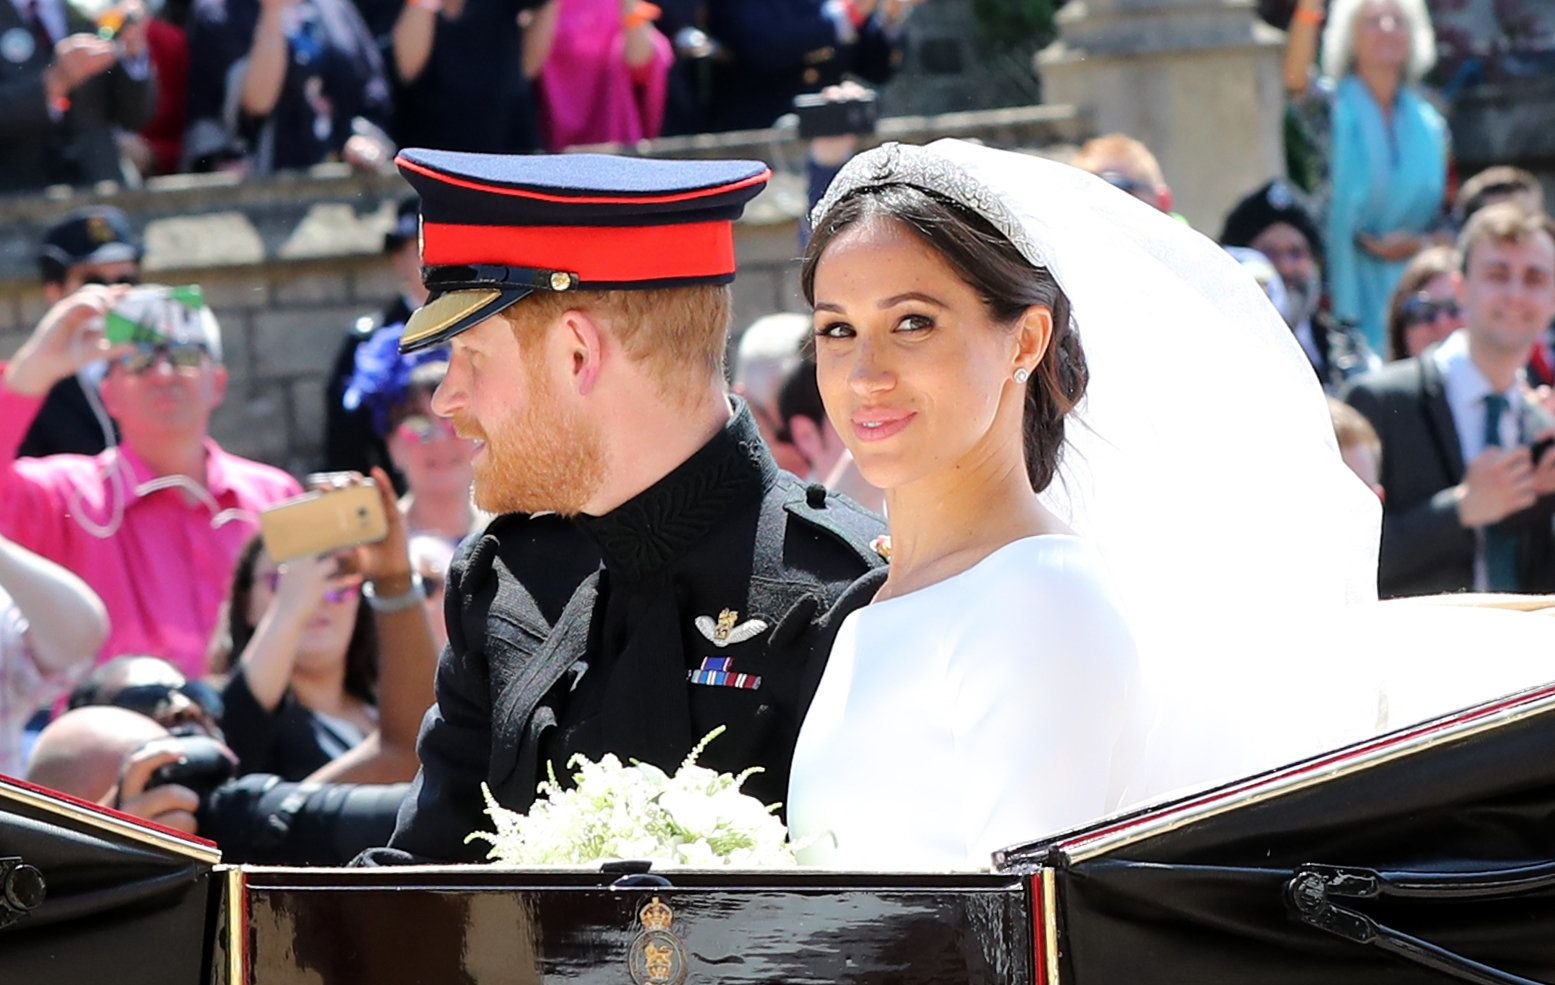 Prince Harry, Duke of Sussex and the Duchess of Sussex in the Ascot Landau carriage during the procession...